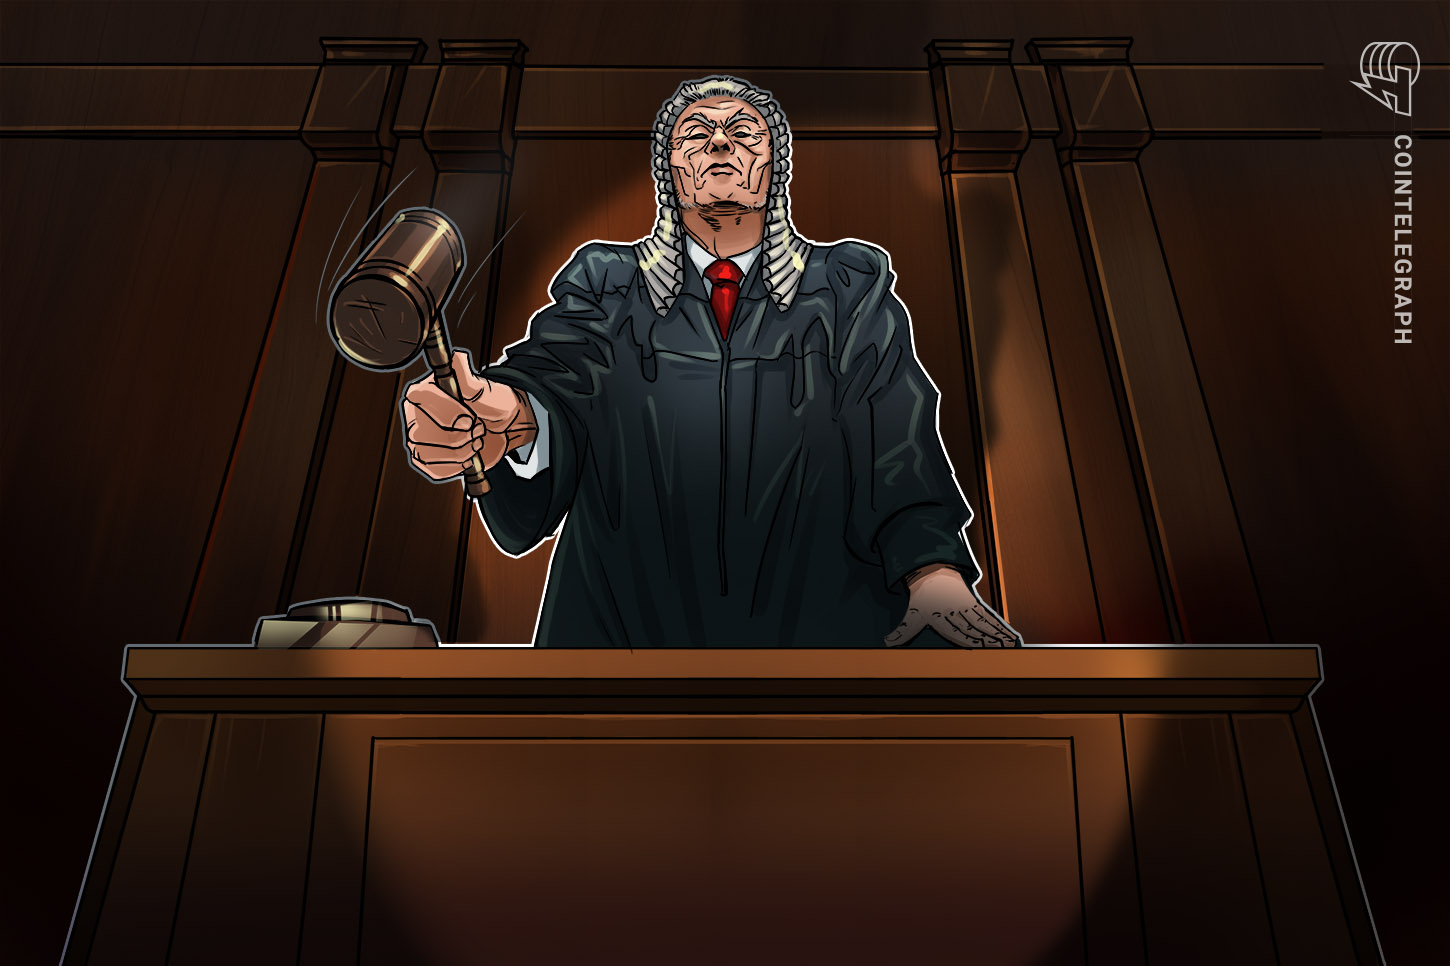 judge-rejects-motion-to-freeze-creds-crypto-assets-in-bankruptcy-case